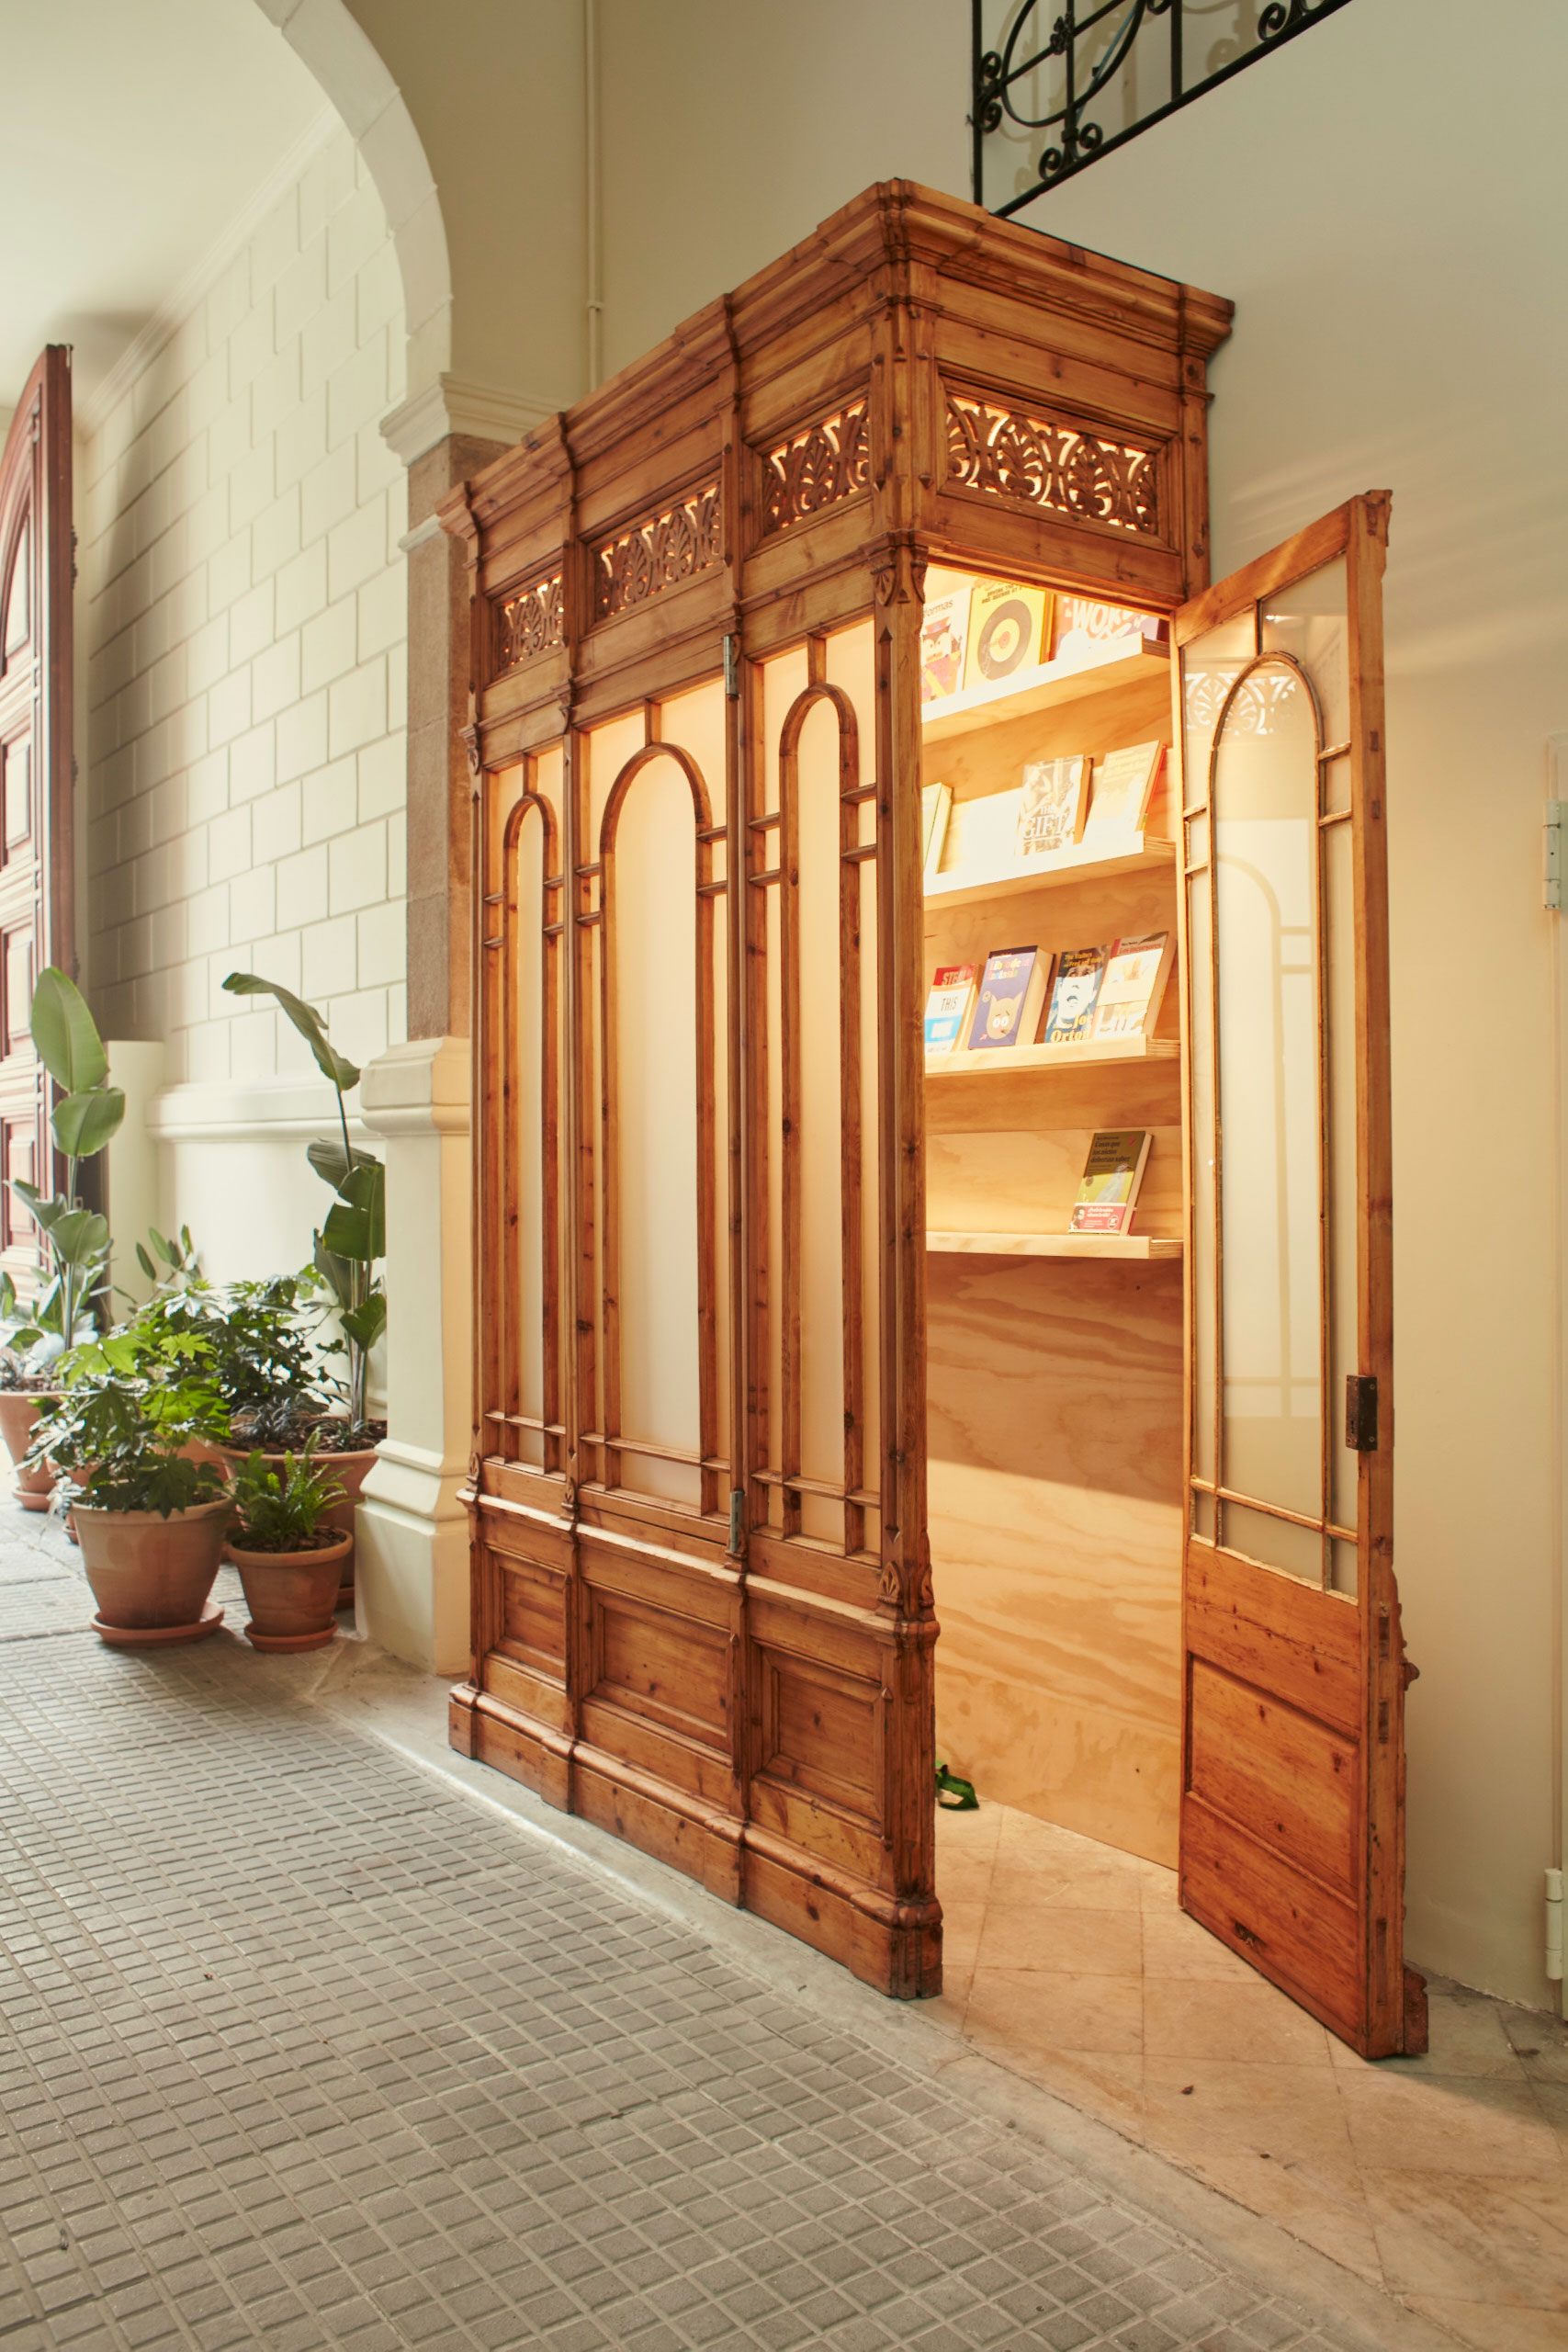 The library by Blackie Books.